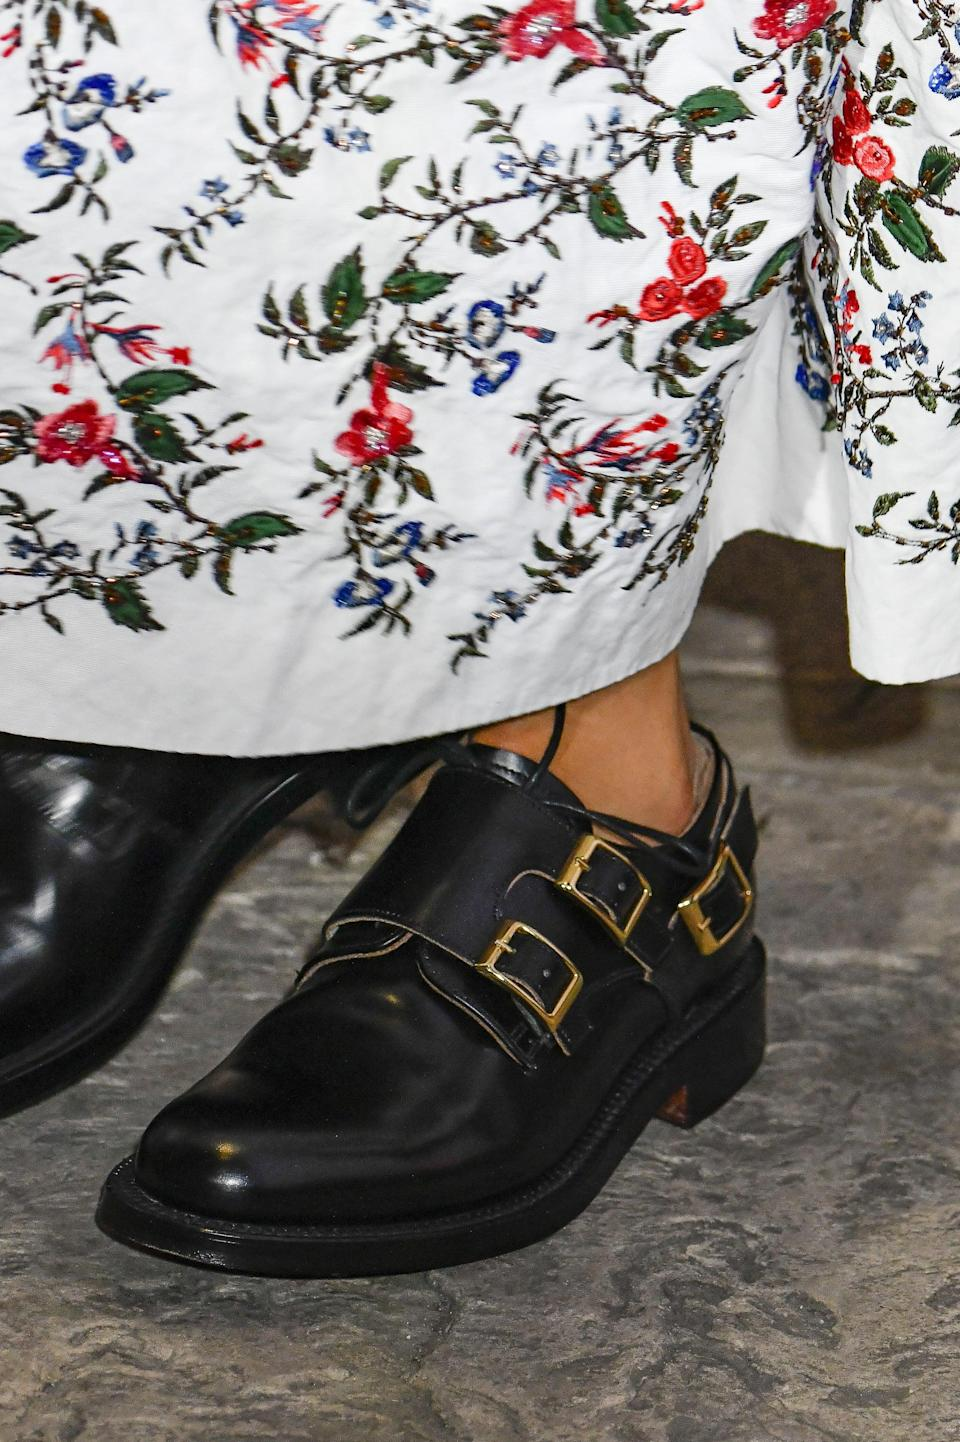 <p>Shoes from Erdem spring 2022 collection.</p>